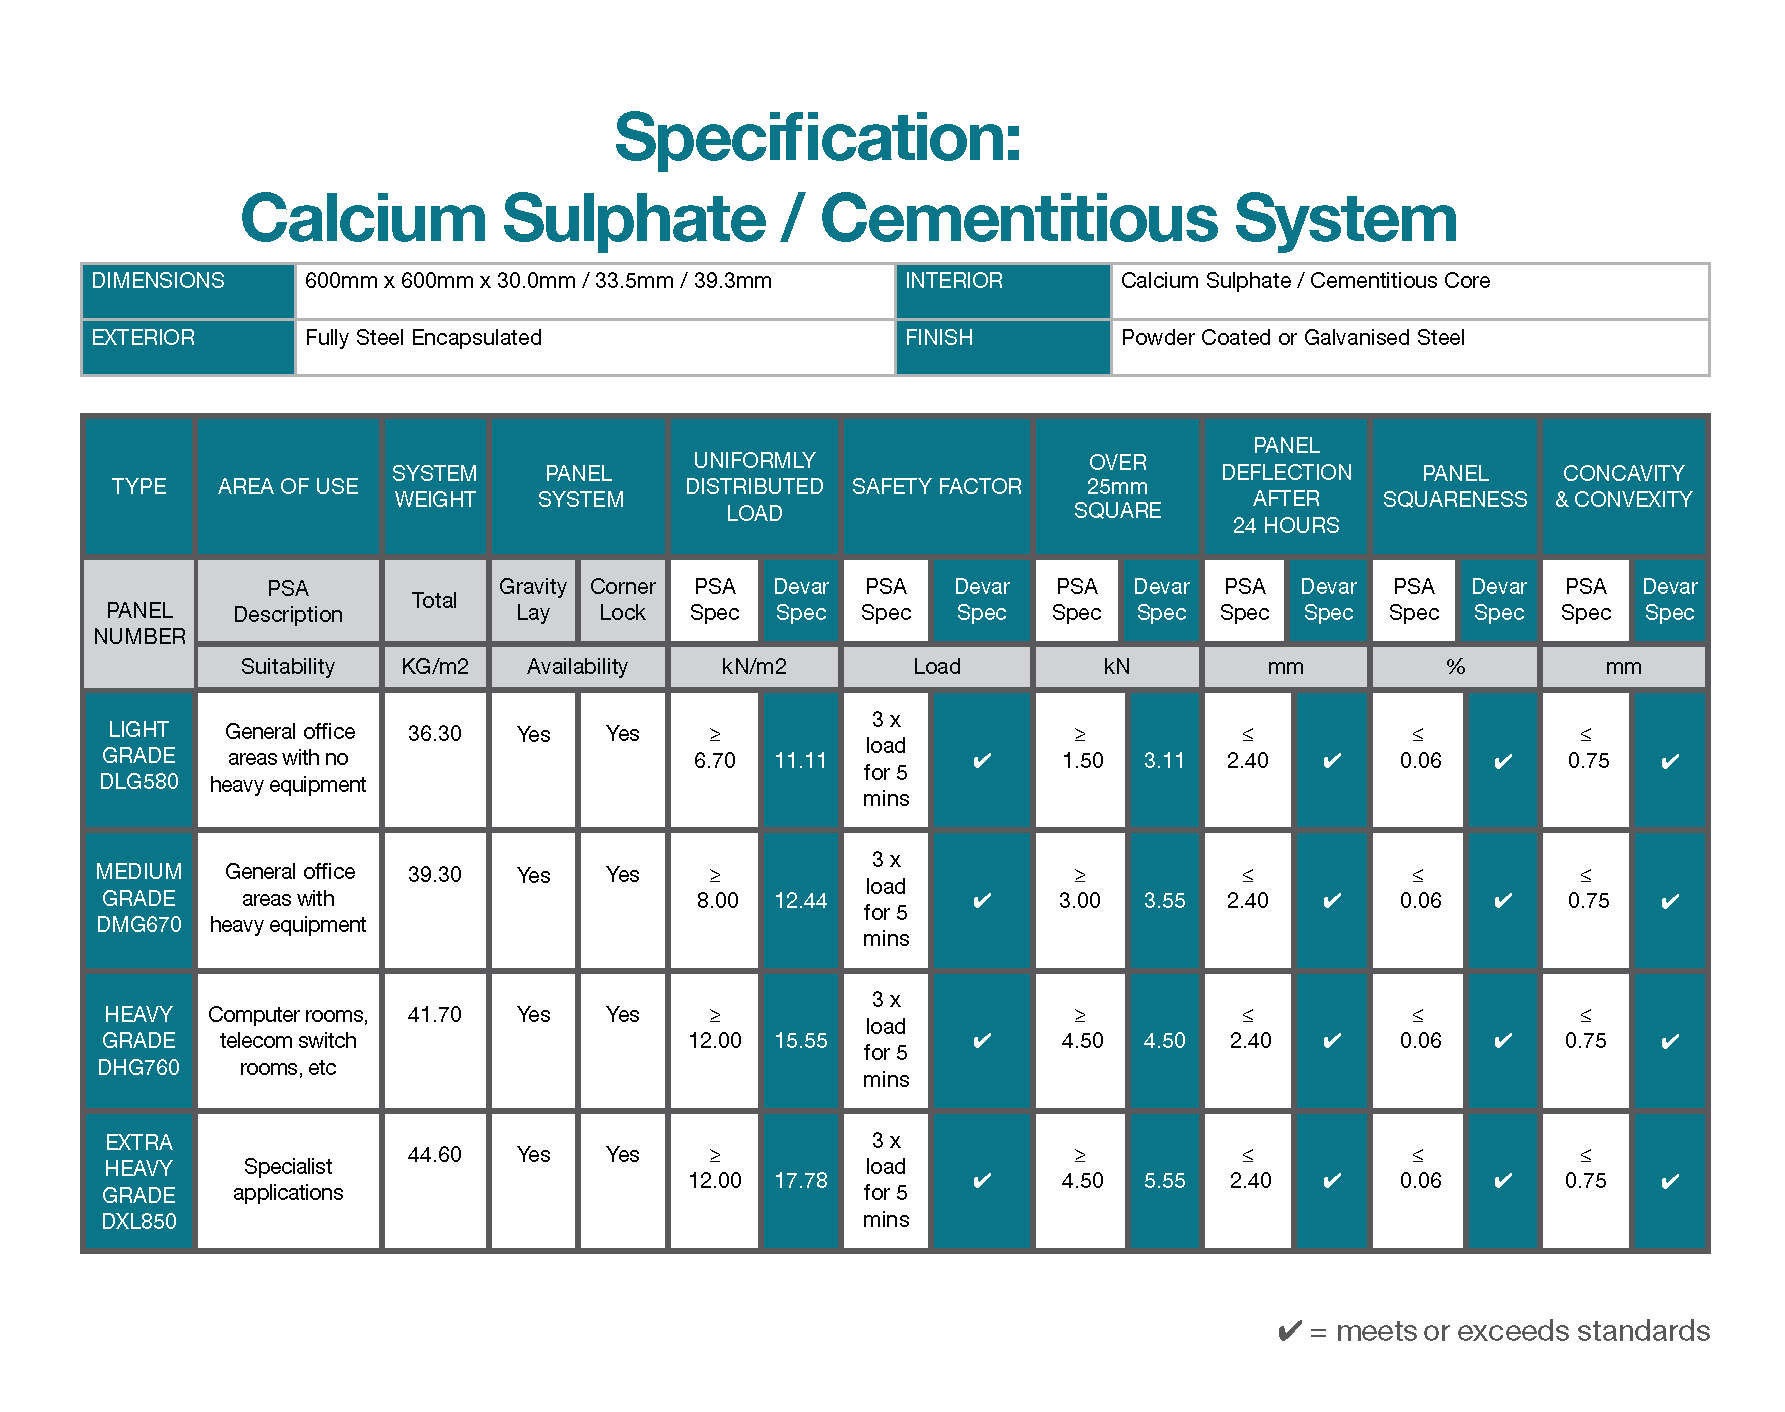 Access Flooring System Cementitious Core PSA Specification Table 2018 Devar